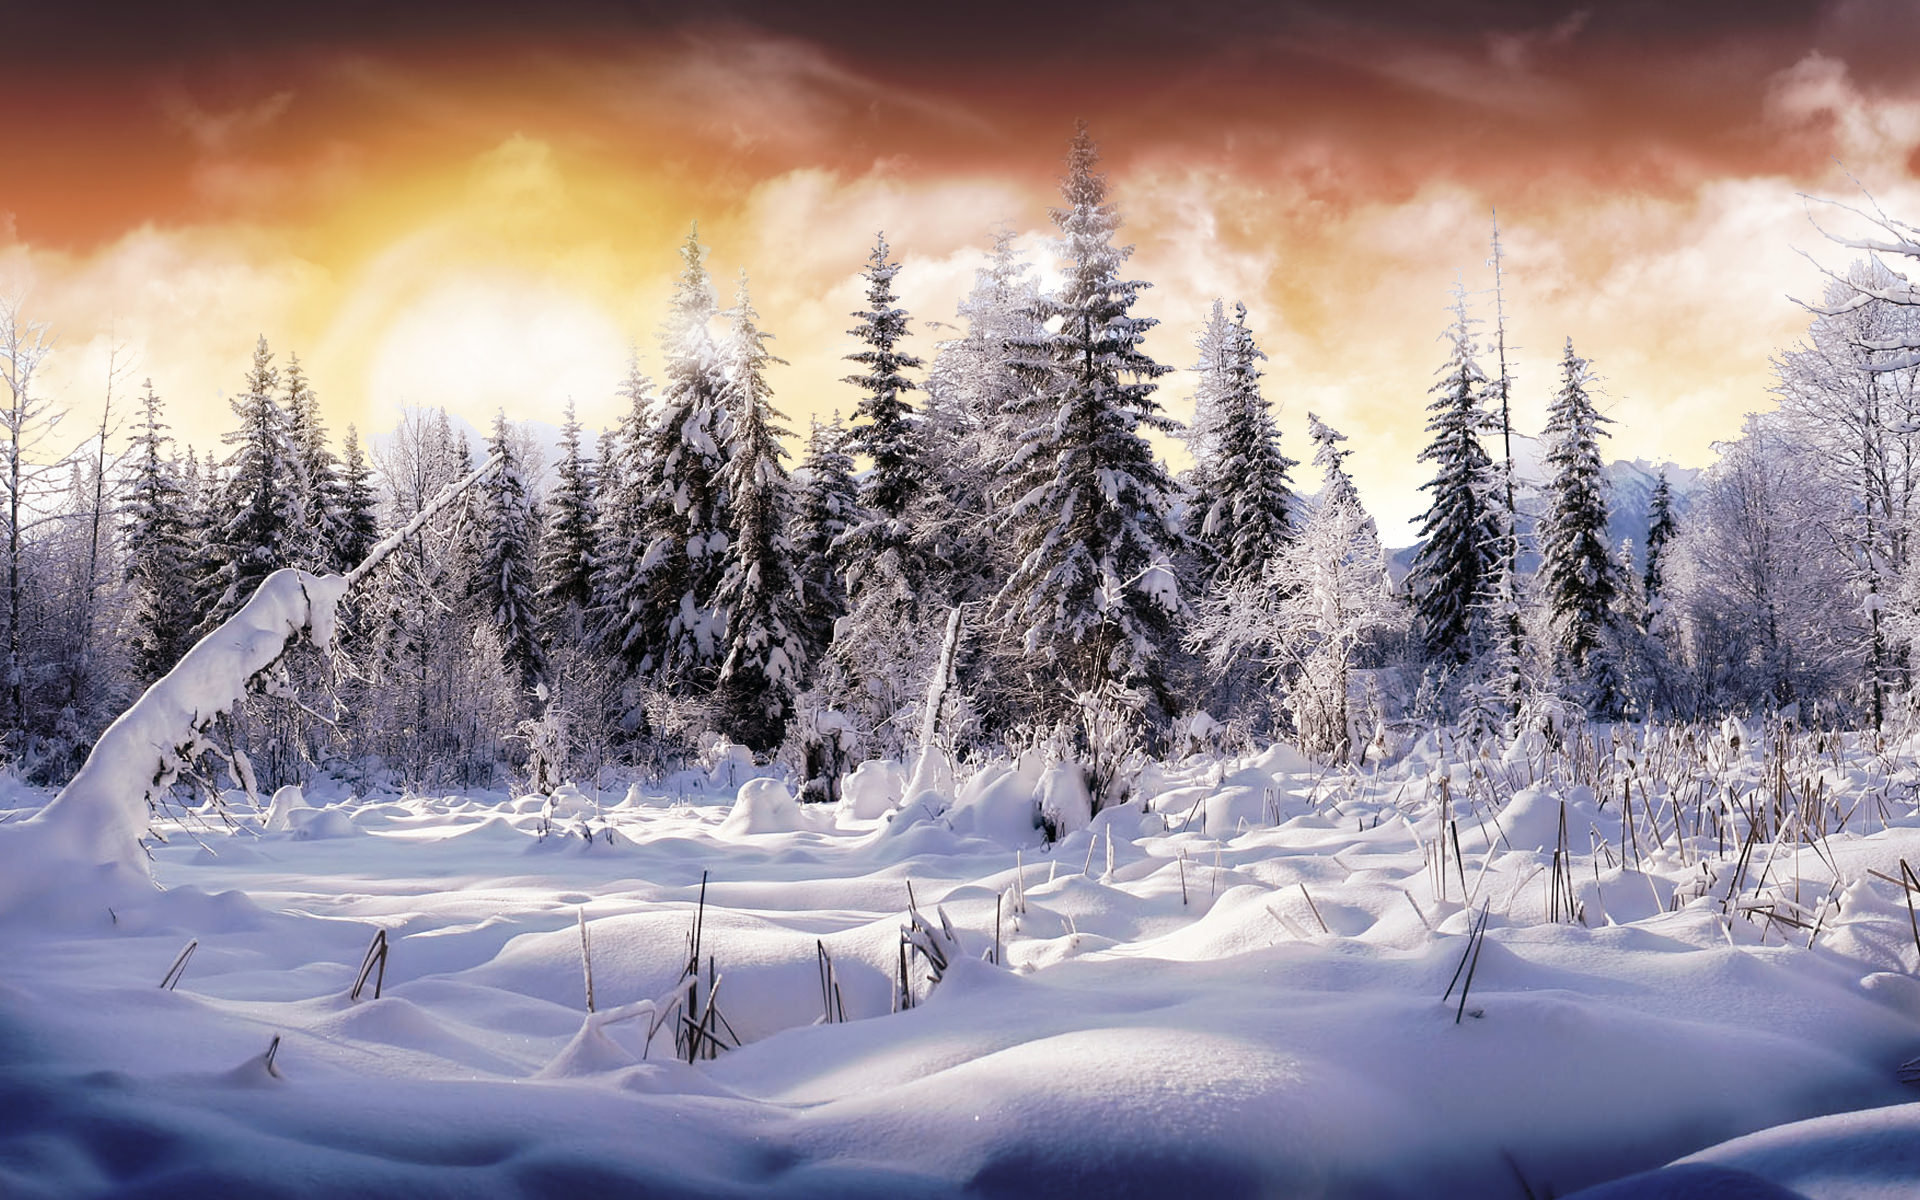 Falling Snow Wallpaper Download 21 Winter Wallpapers Backgrounds Images Freecreatives